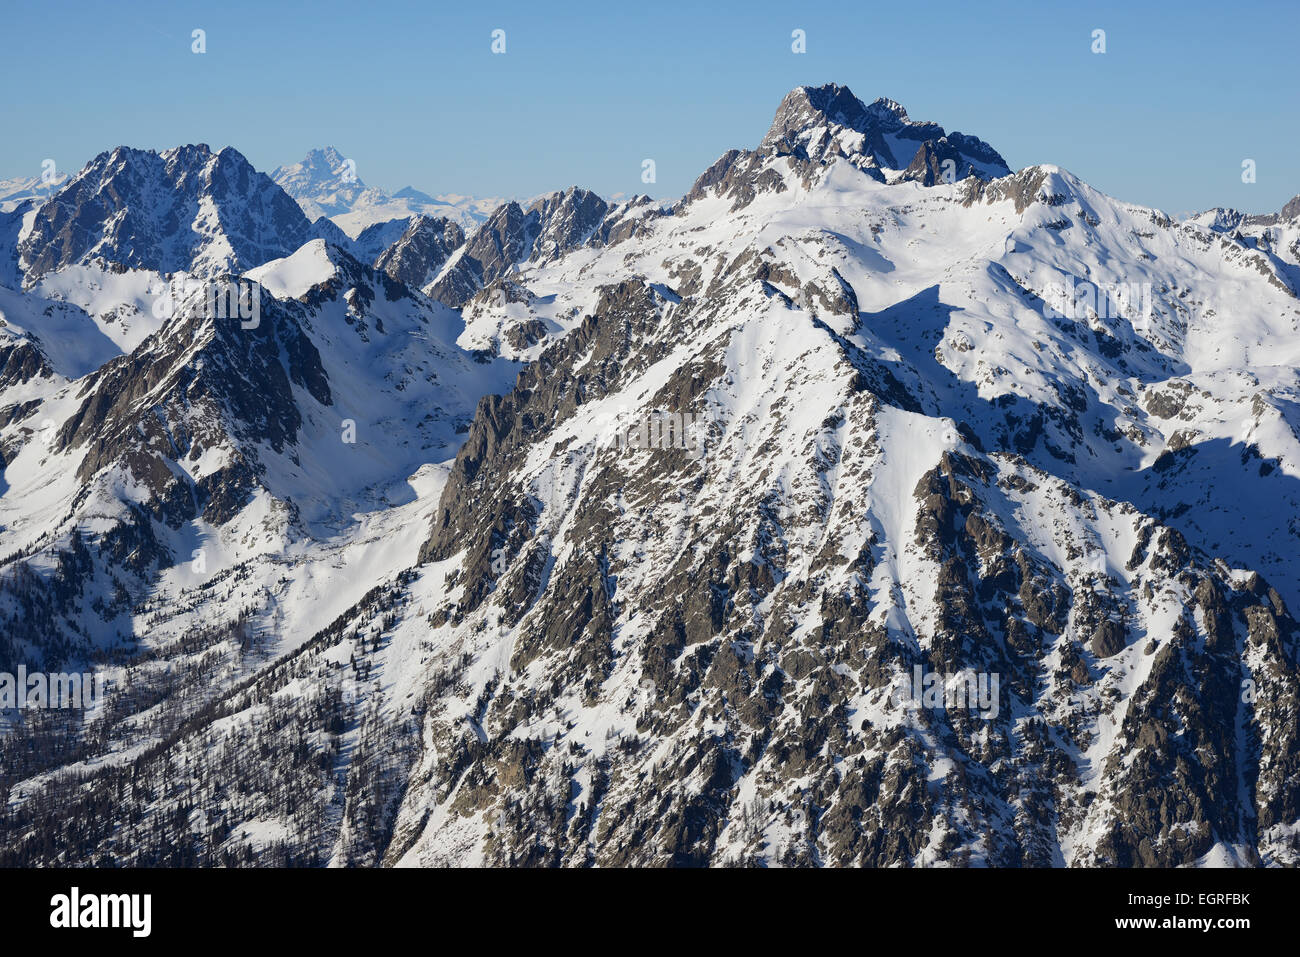 MONTE ARGENTERA (aerial view). Highest summit (3297m) in the coastal Alps. Summit in Italy, viewed from the French Stock Photo